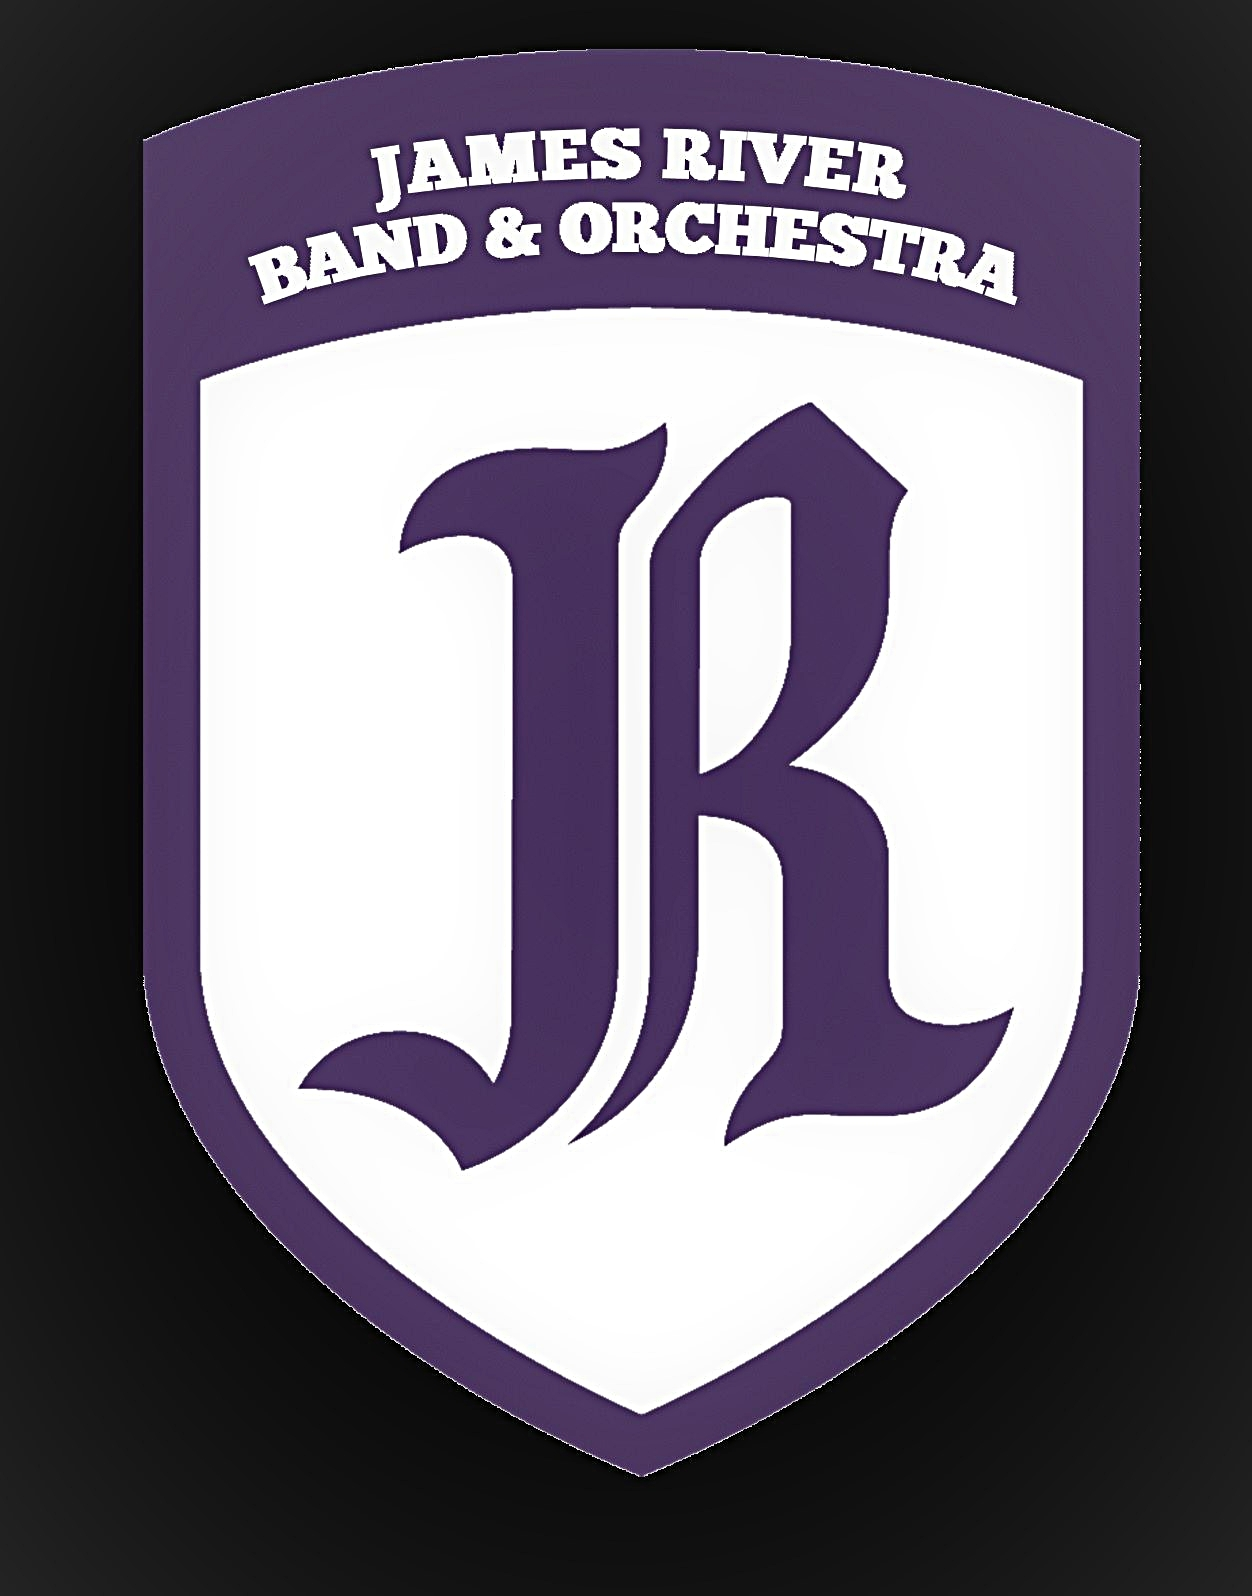 JAMES RIVER BAND AND ORCHESTRA